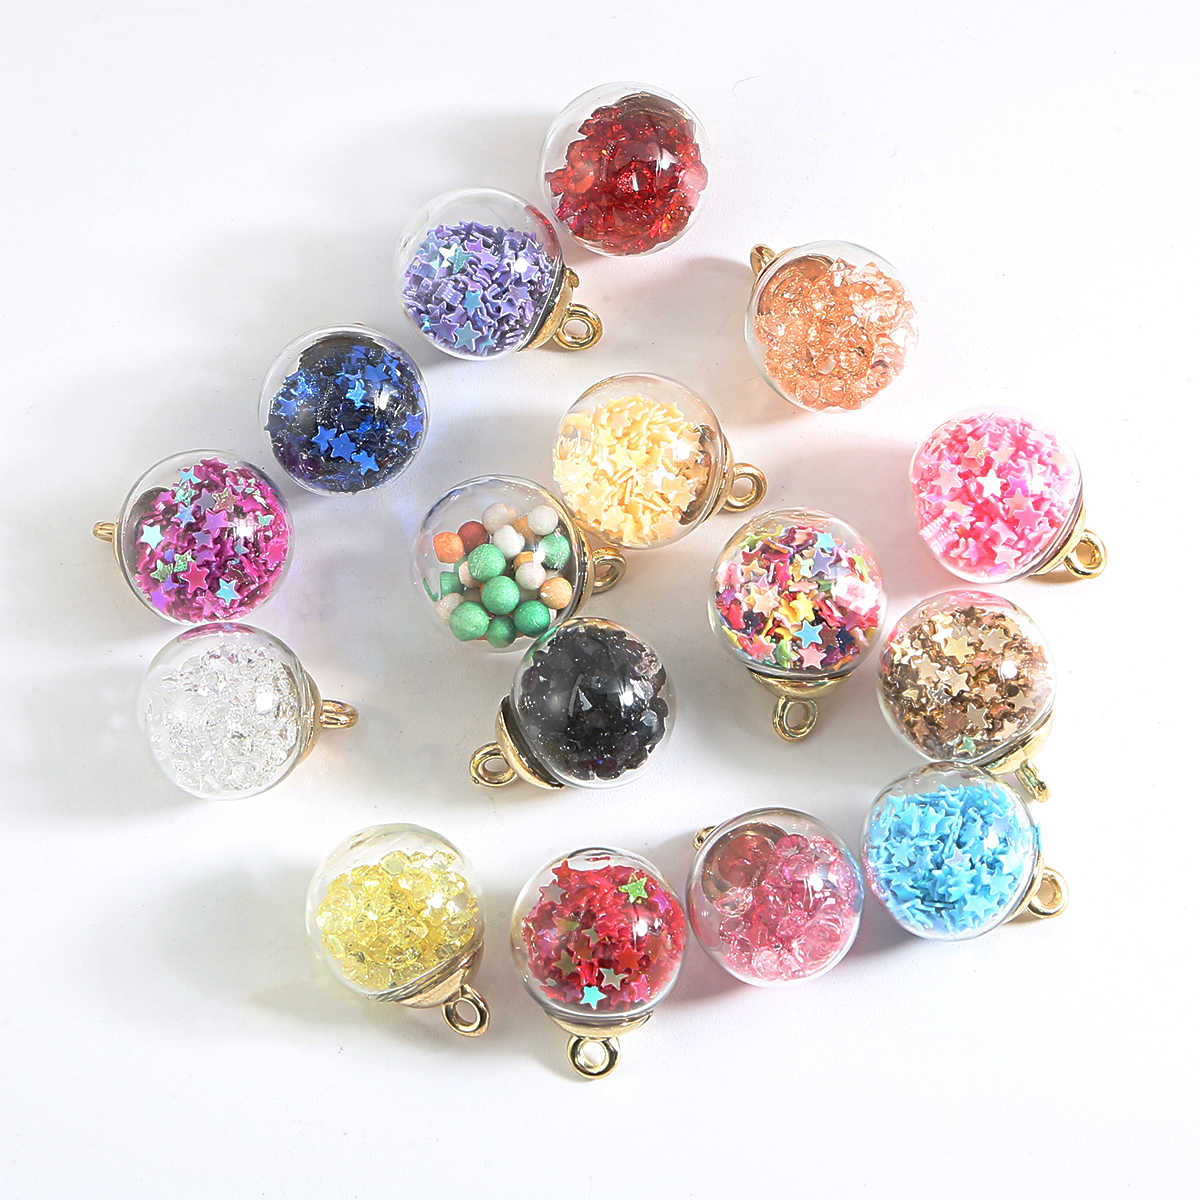 10pcs/lot 15mm Transparent Glass Ball Charm Pendant For Bracelet Necklace Jewelry Making DIY Earring Finding